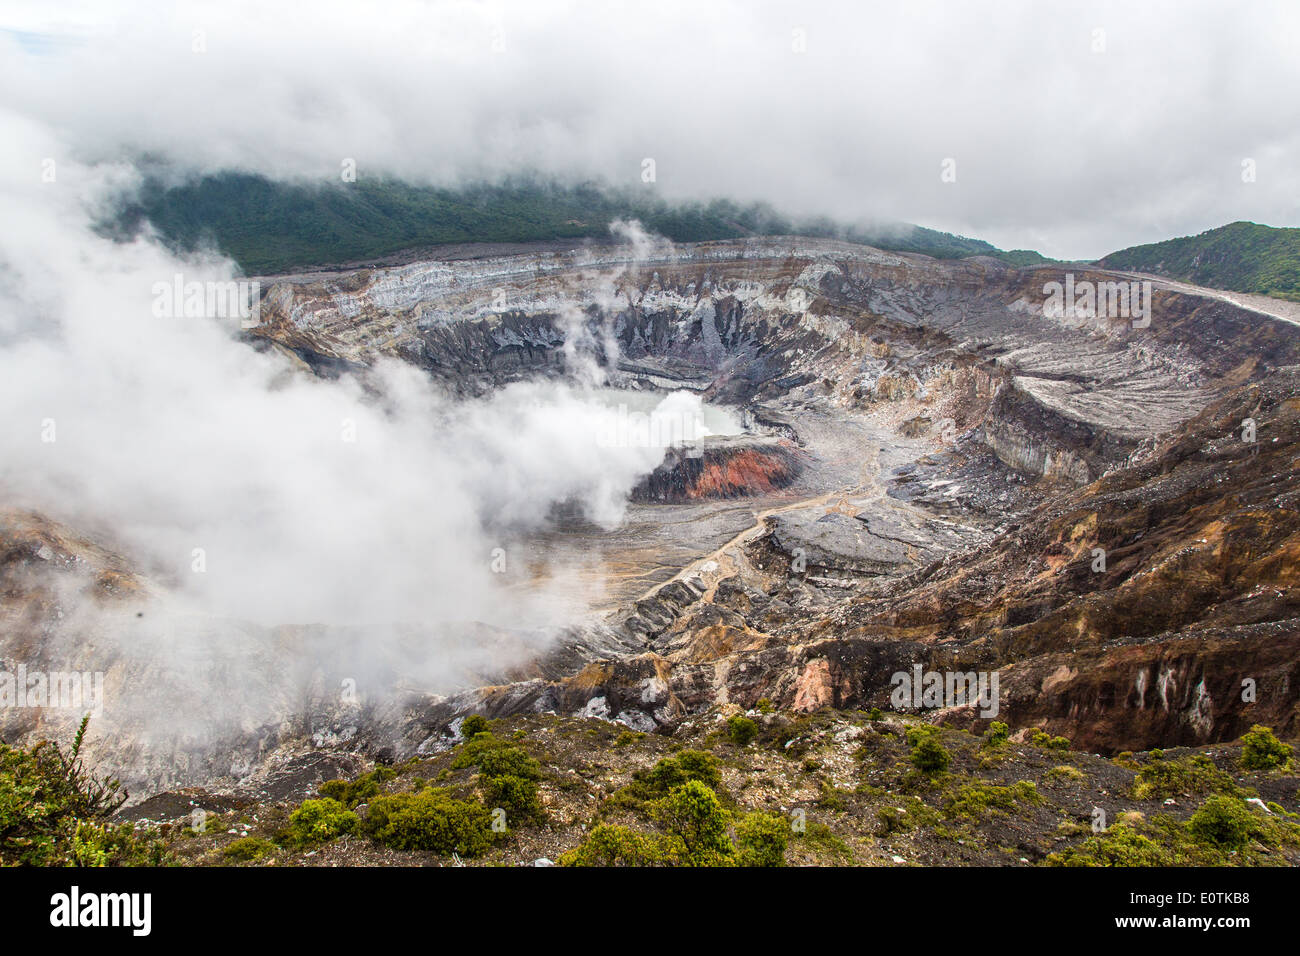 Steaming fumes issuing from the crater lake of Poas volcano near San Jose in central Costa Rica - Stock Image